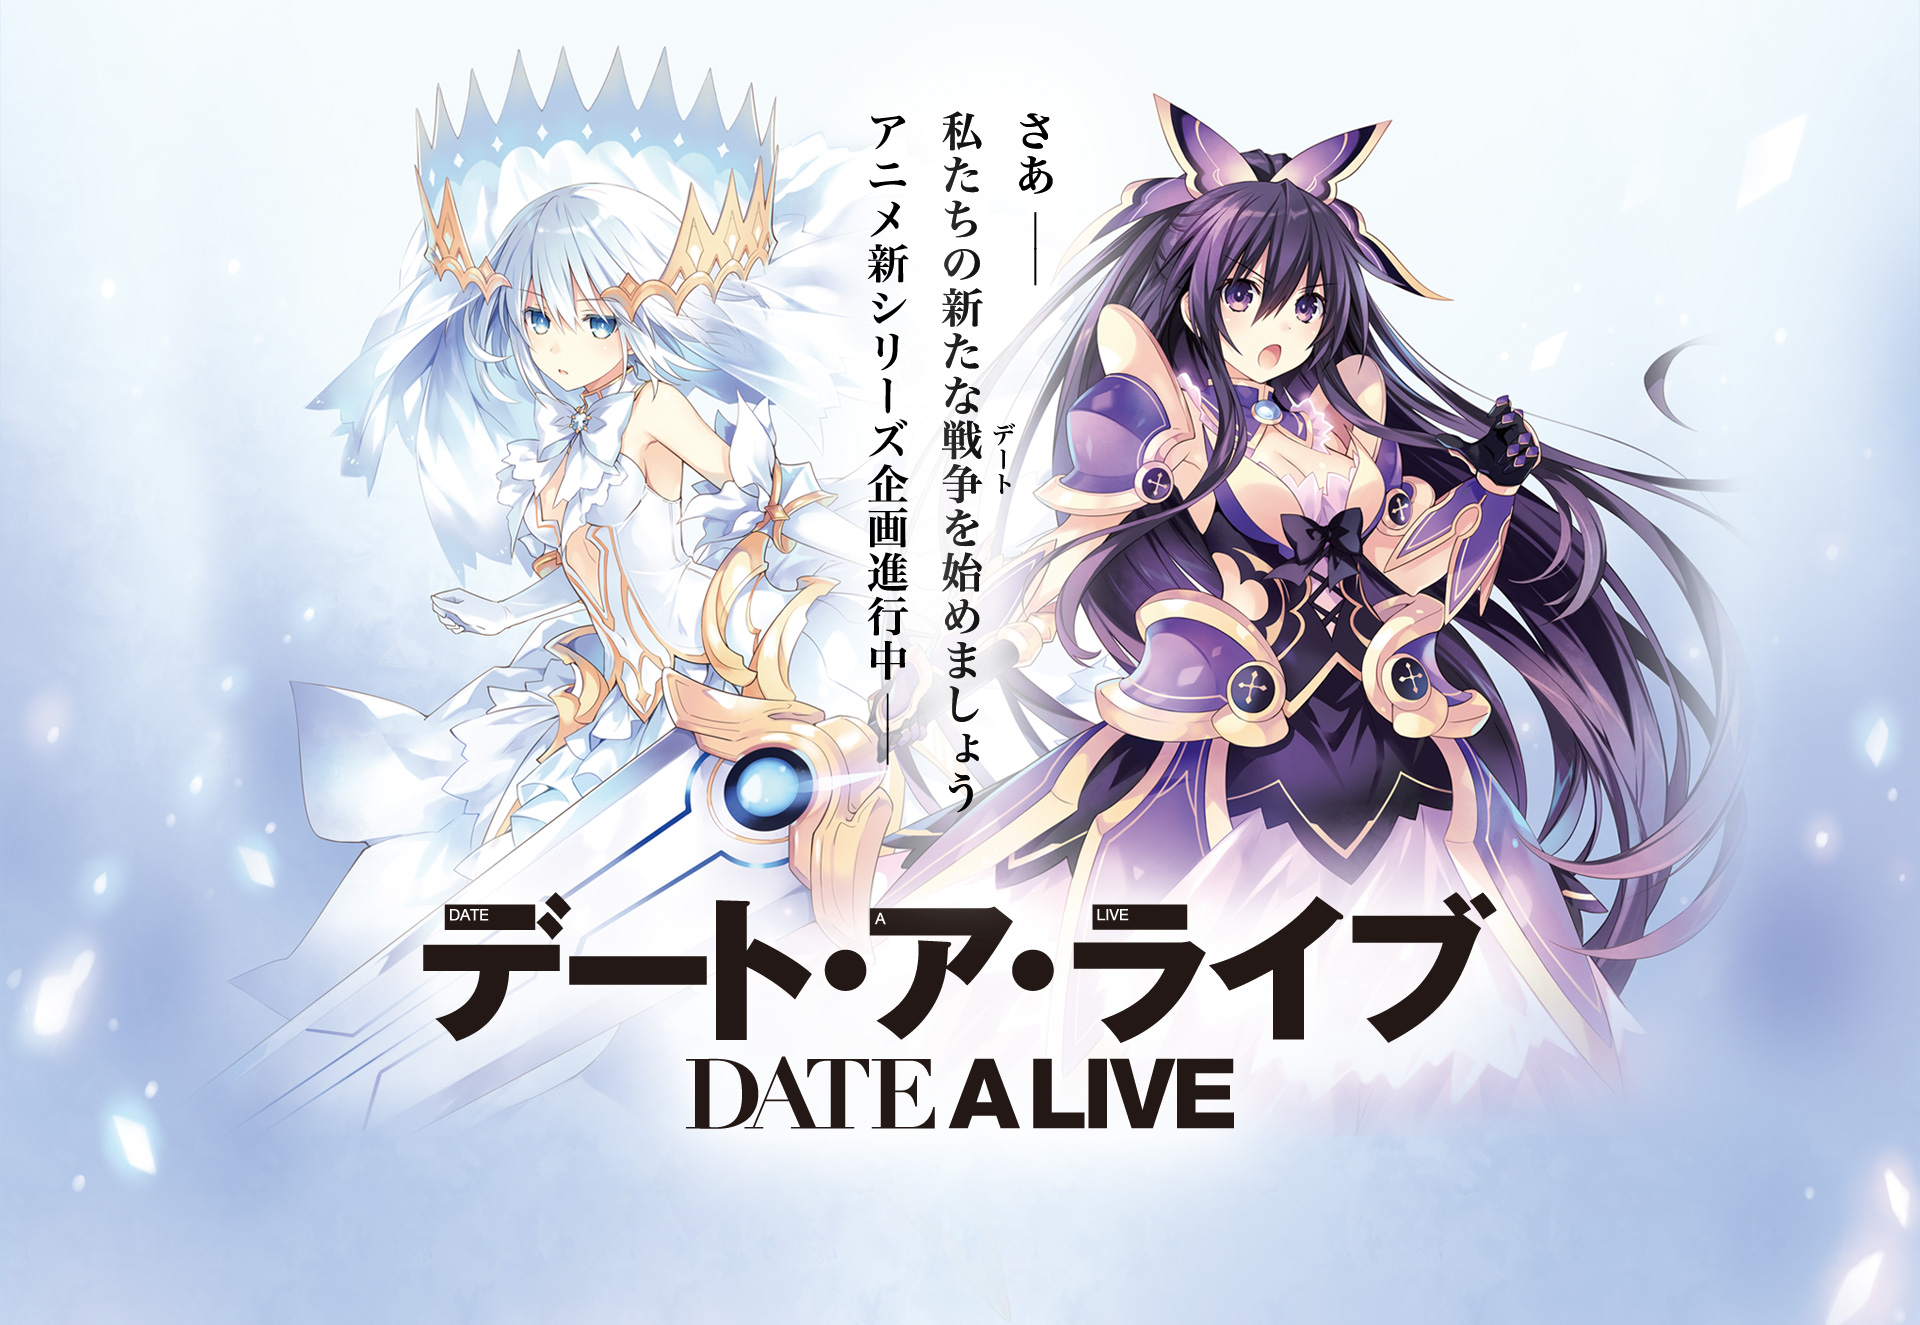 Date a live new anime season announcement bg jpg